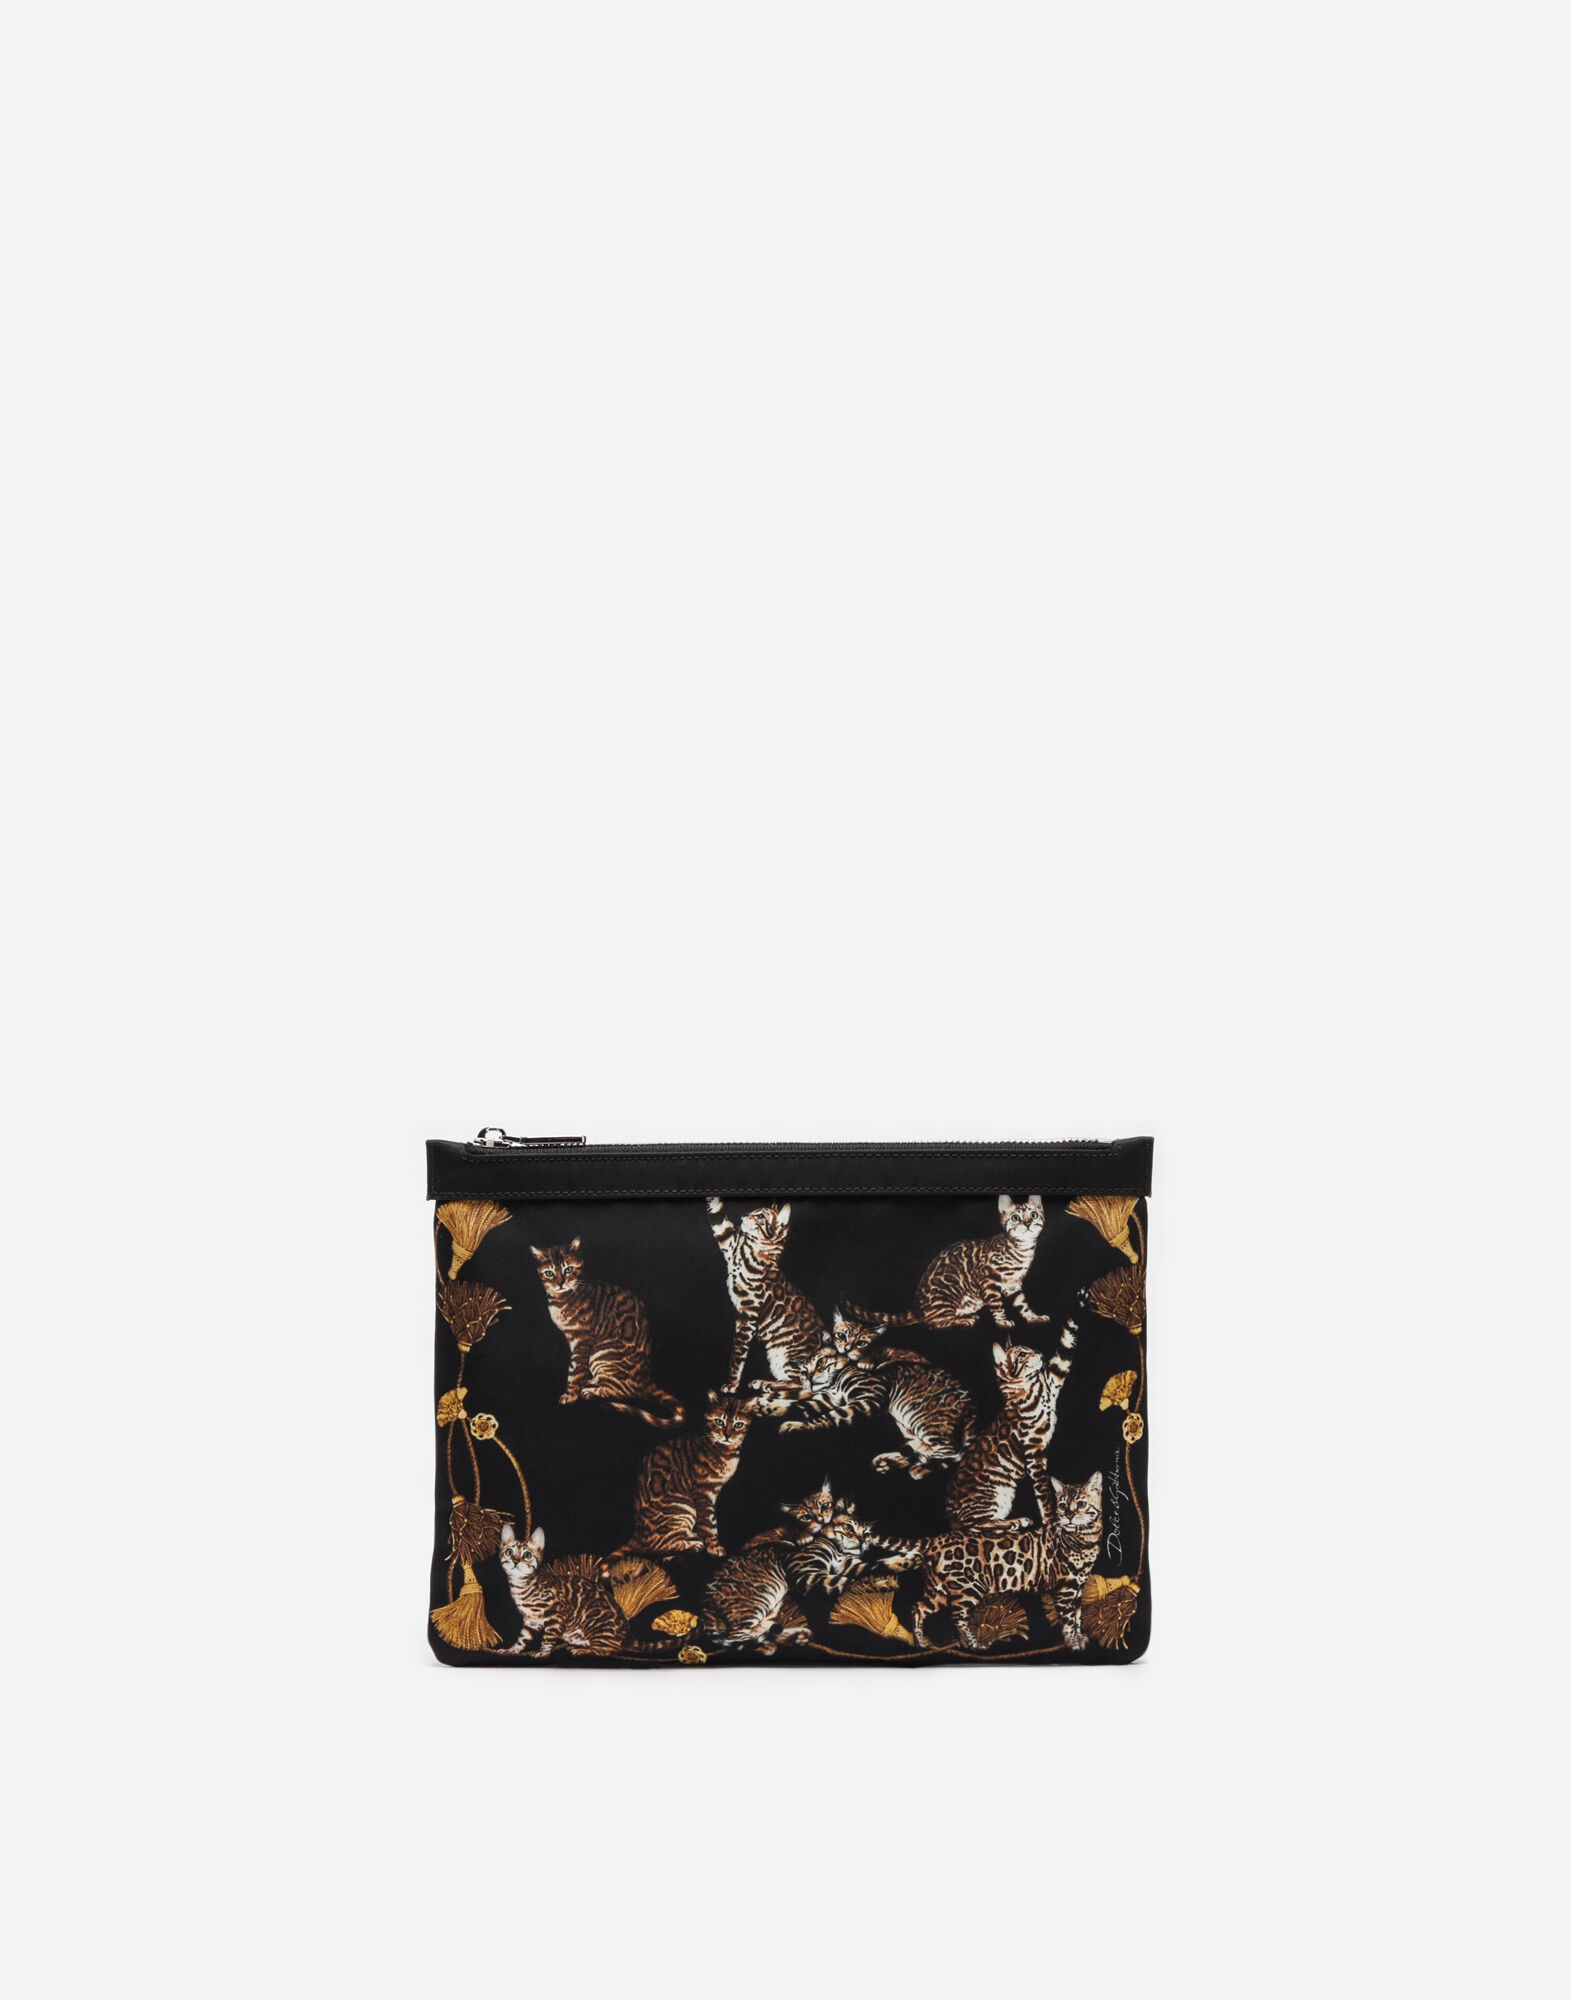 PRINTED NYLON PURSE